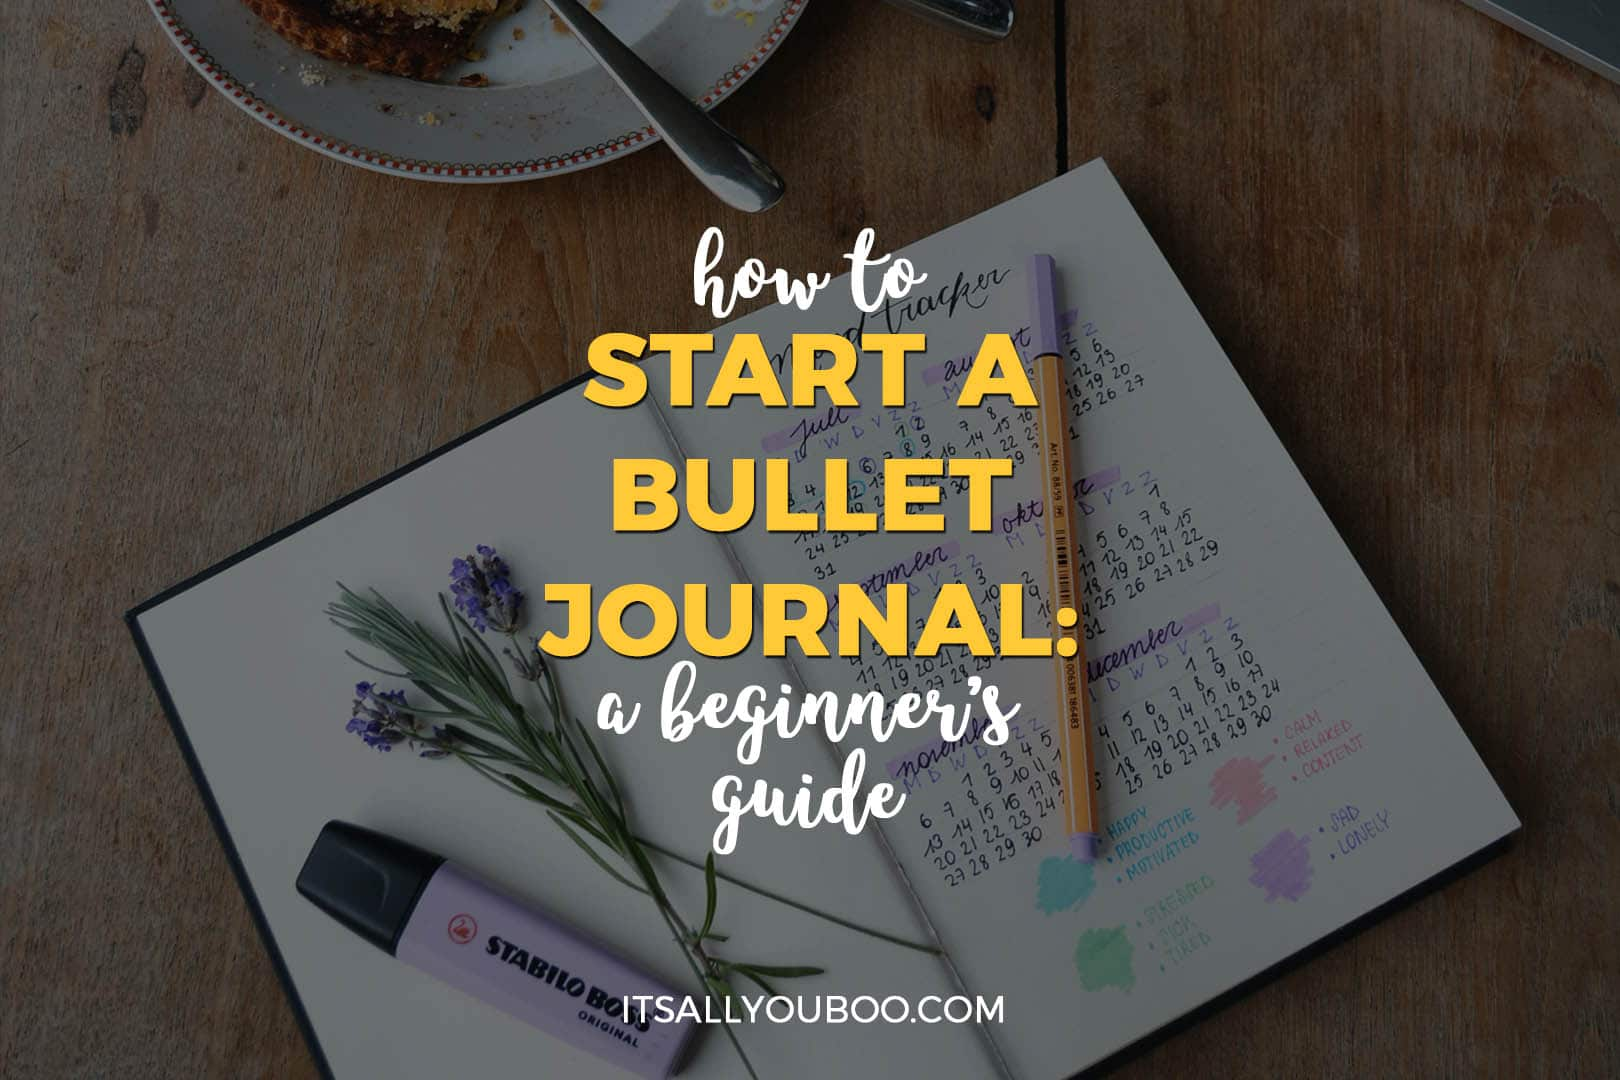 How to Start a Bullet Journal: A Beginner's Guide